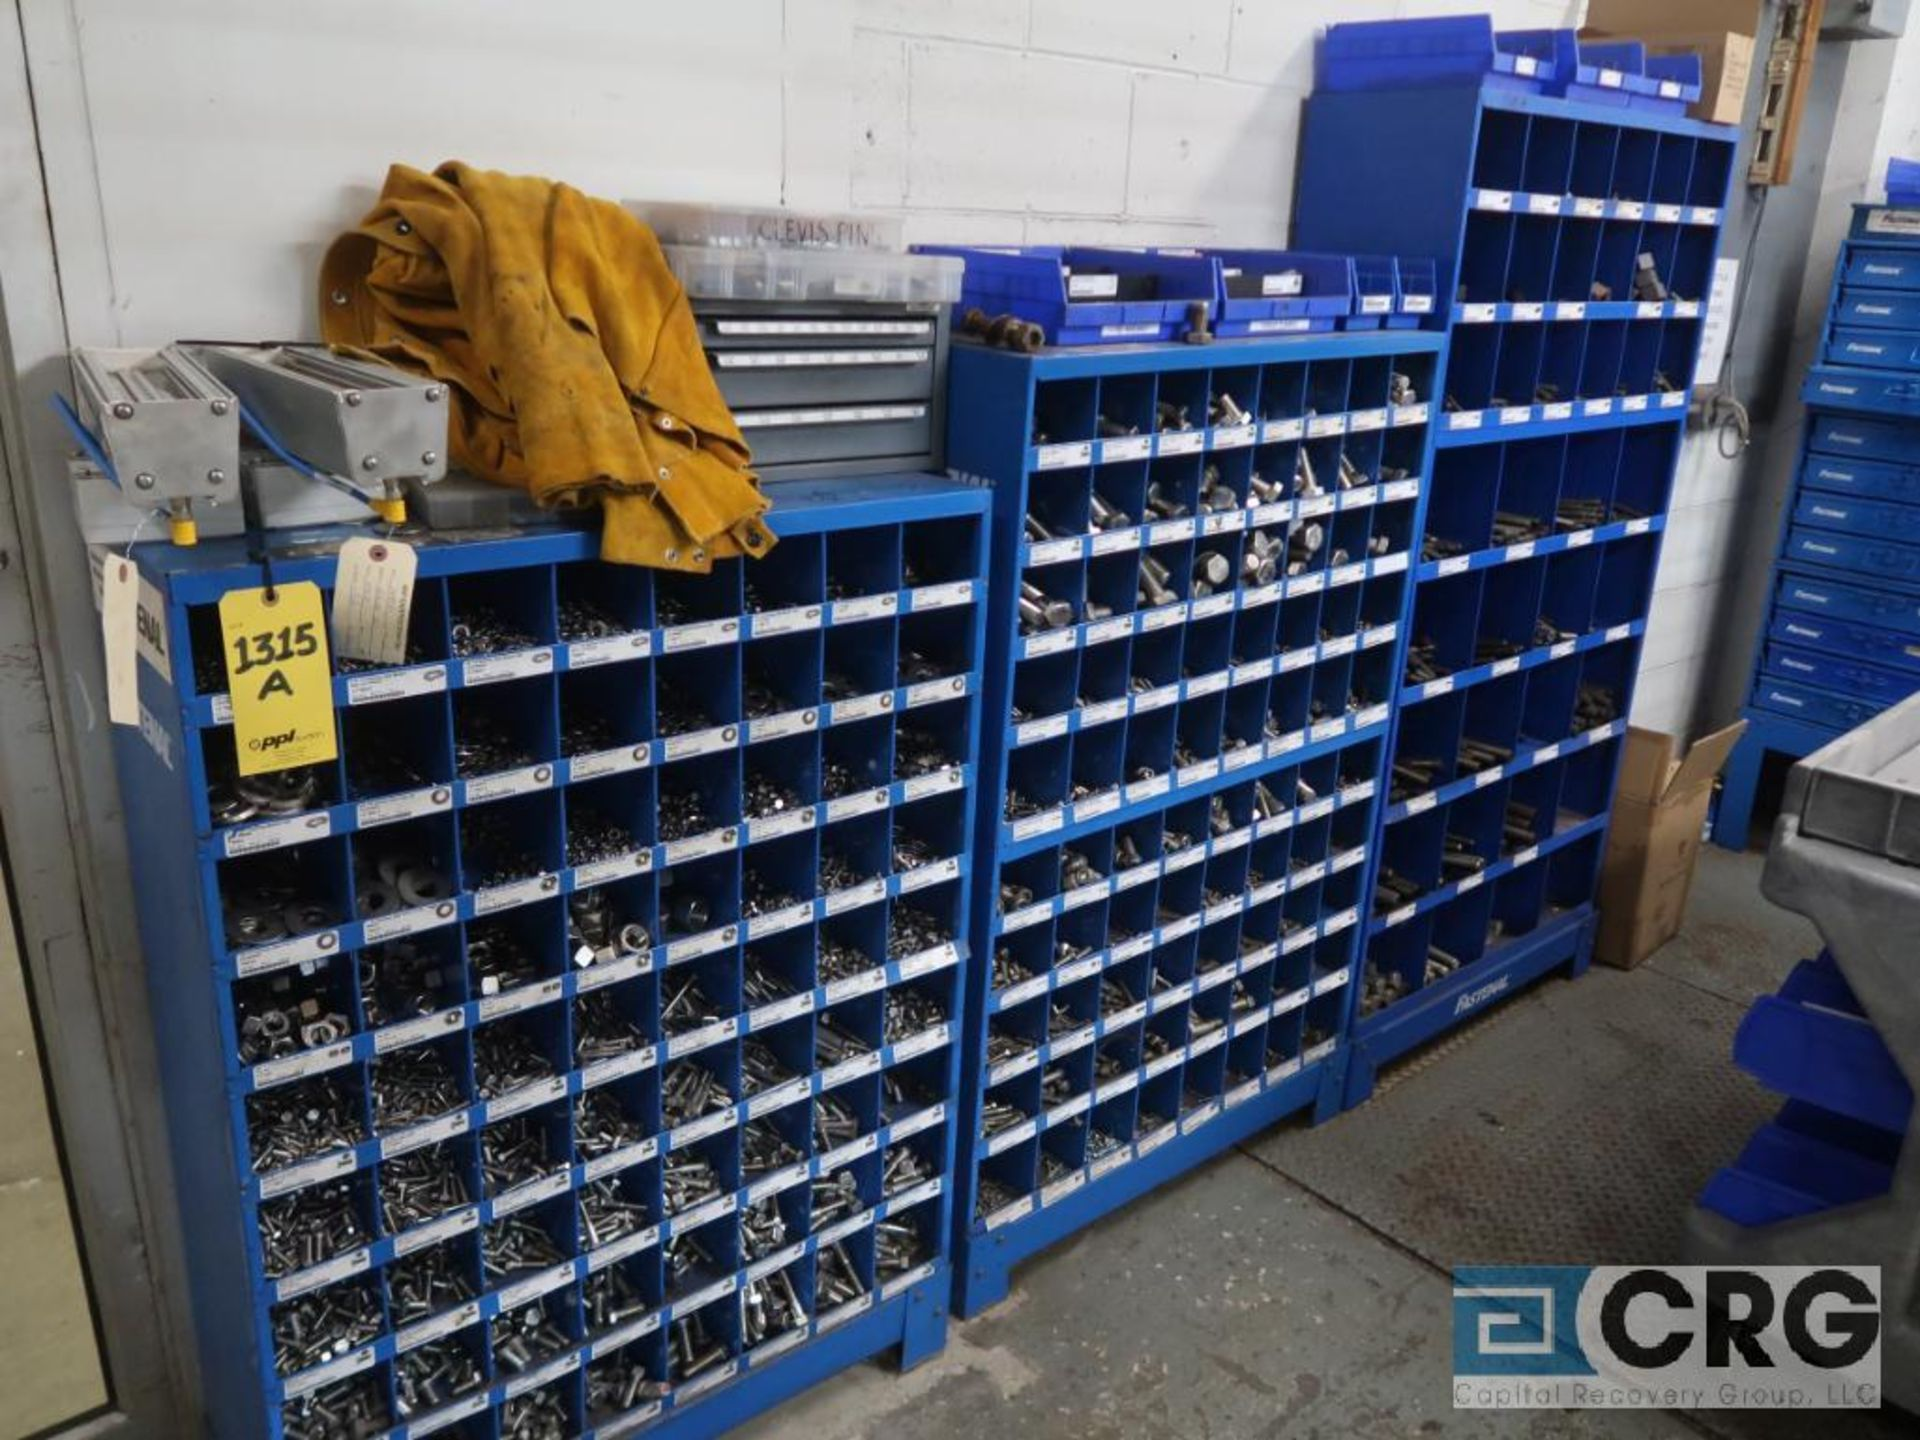 Nut and bolt 4 drawer parts bin with parts including wire, nuts, springs, cotter pins, and bin